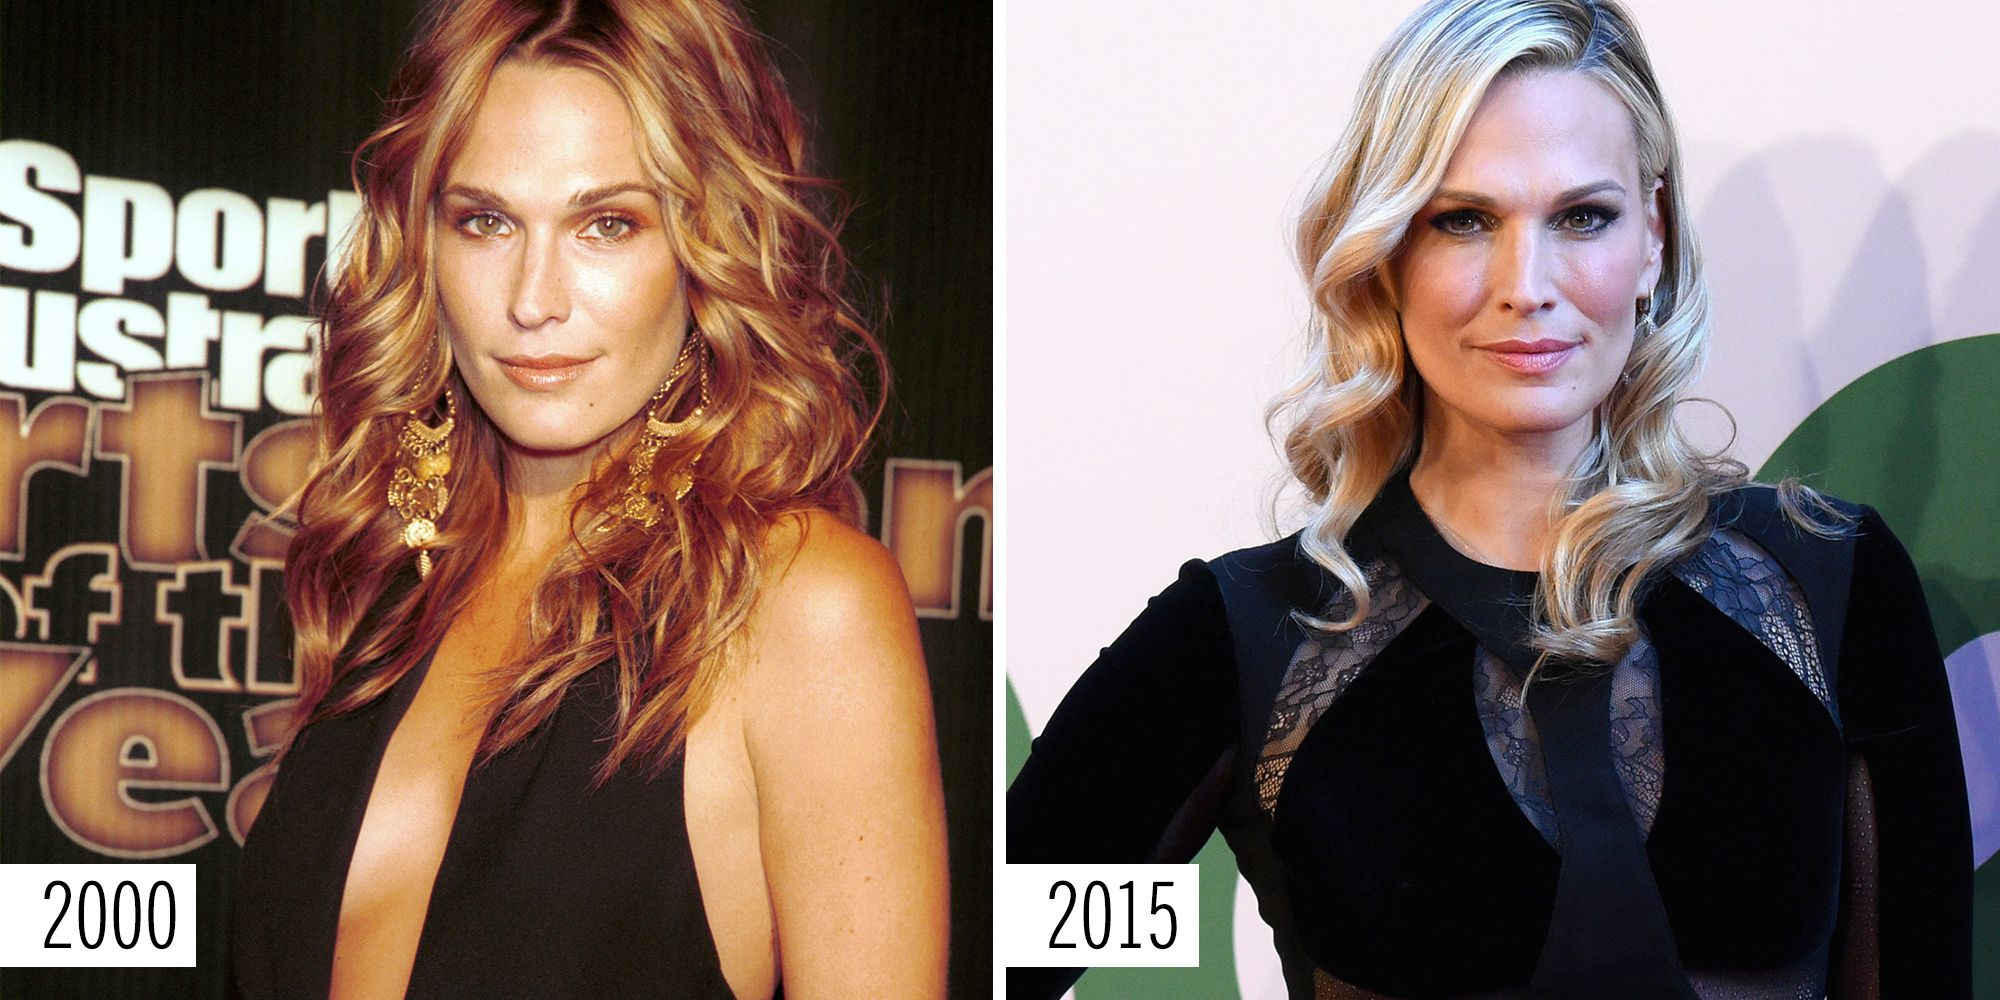 Starving for Days, Walking 14 Miles Straight: The Drastic Things Molly Sims Did to Stay a Size 0 Starving for Days, Walking 14 Miles Straight: The Drastic Things Molly Sims Did to Stay a Size 0 new picture